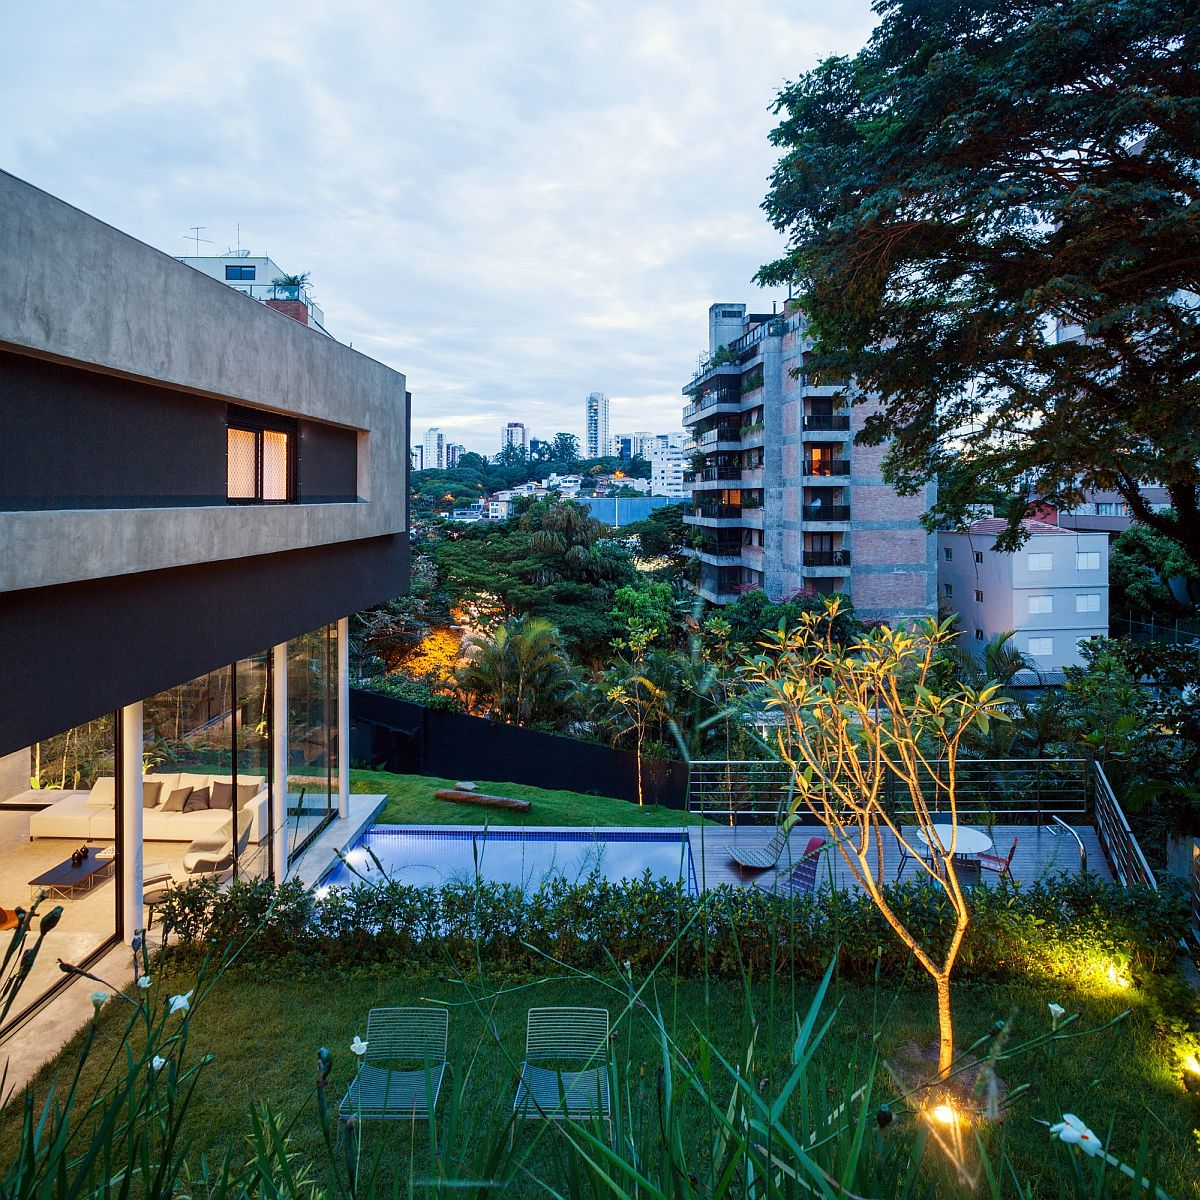 In-ground lighting brings the landscape alive